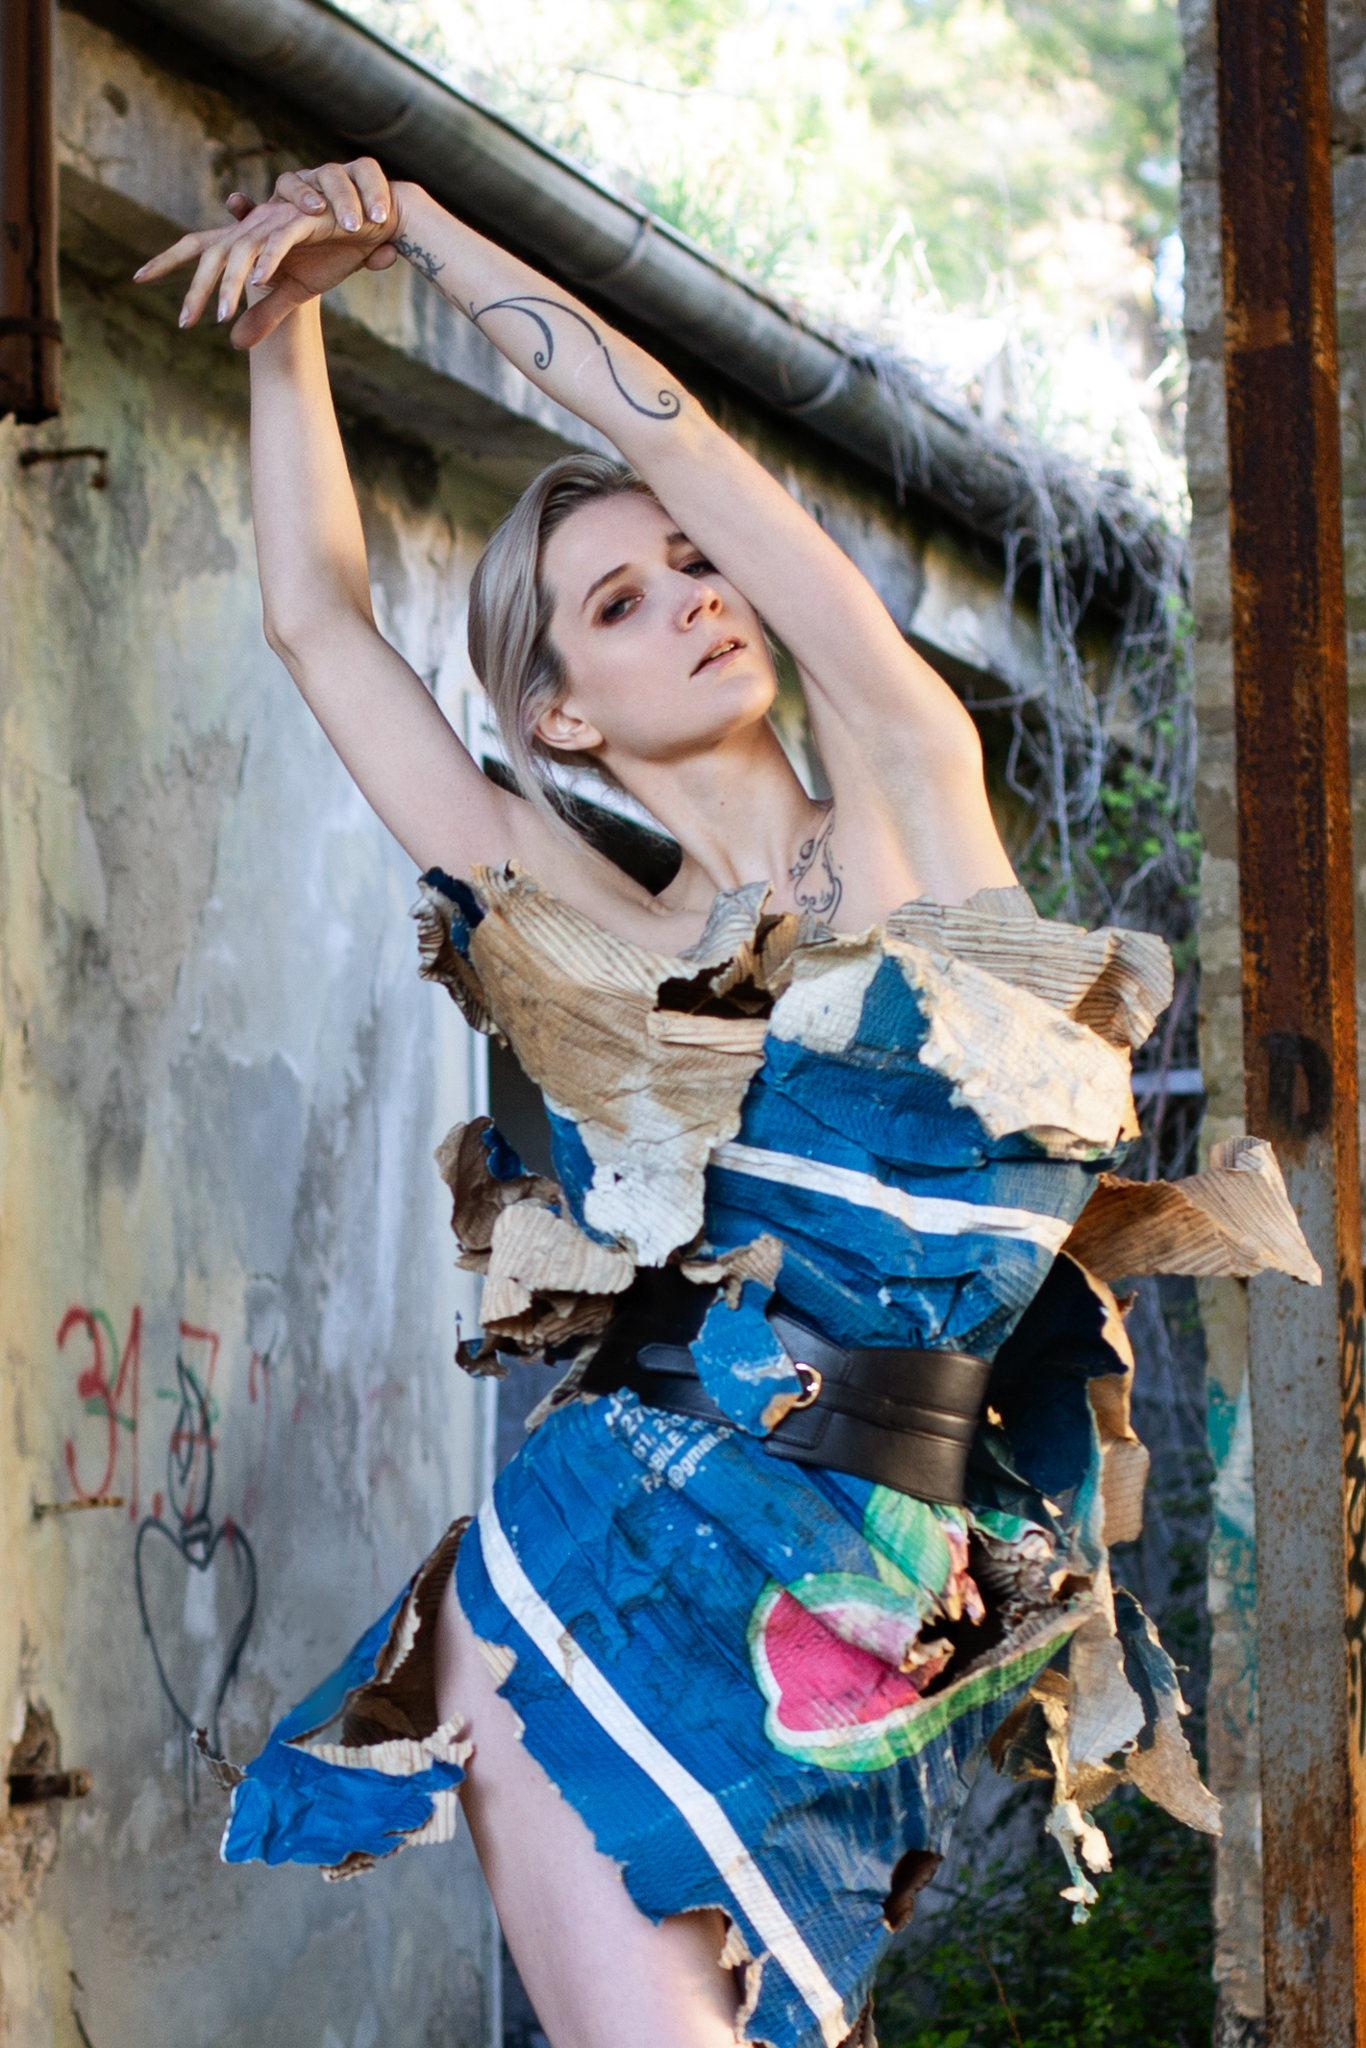 Roxx, shot by Redd, at Pula's abandoned naval base, wearing discarded paper.